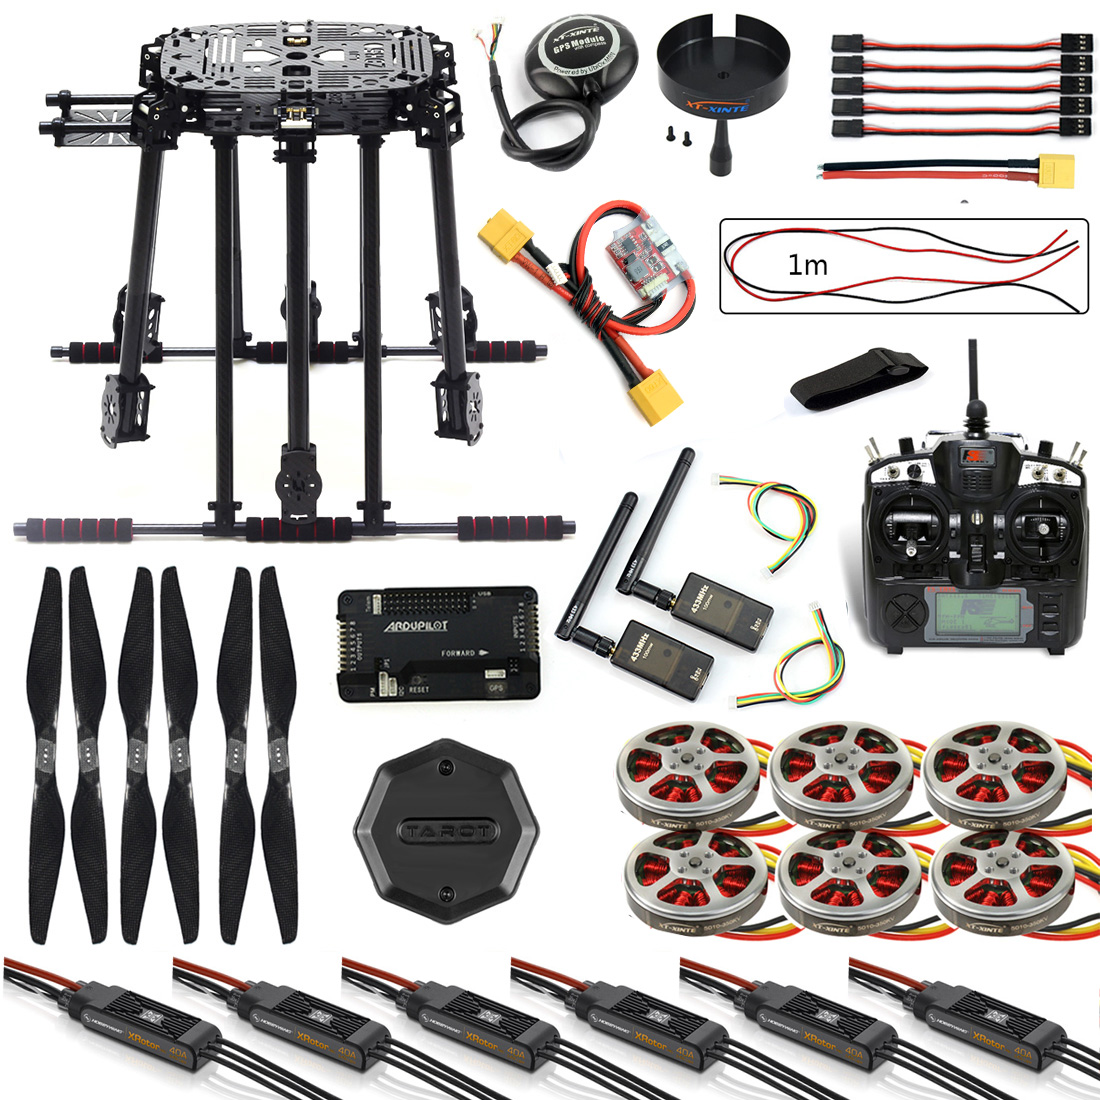 DIY ZD850 Frame Kit APM2.8 Flight Control M8N GPS Flysky TH9X Remote Control 3DR Telemetry Motor ESC RC Hexacopter F19833-G yobang security wifi gsm 3g alarm systems security home gsm alarm system app control wirelress alarm diy kit